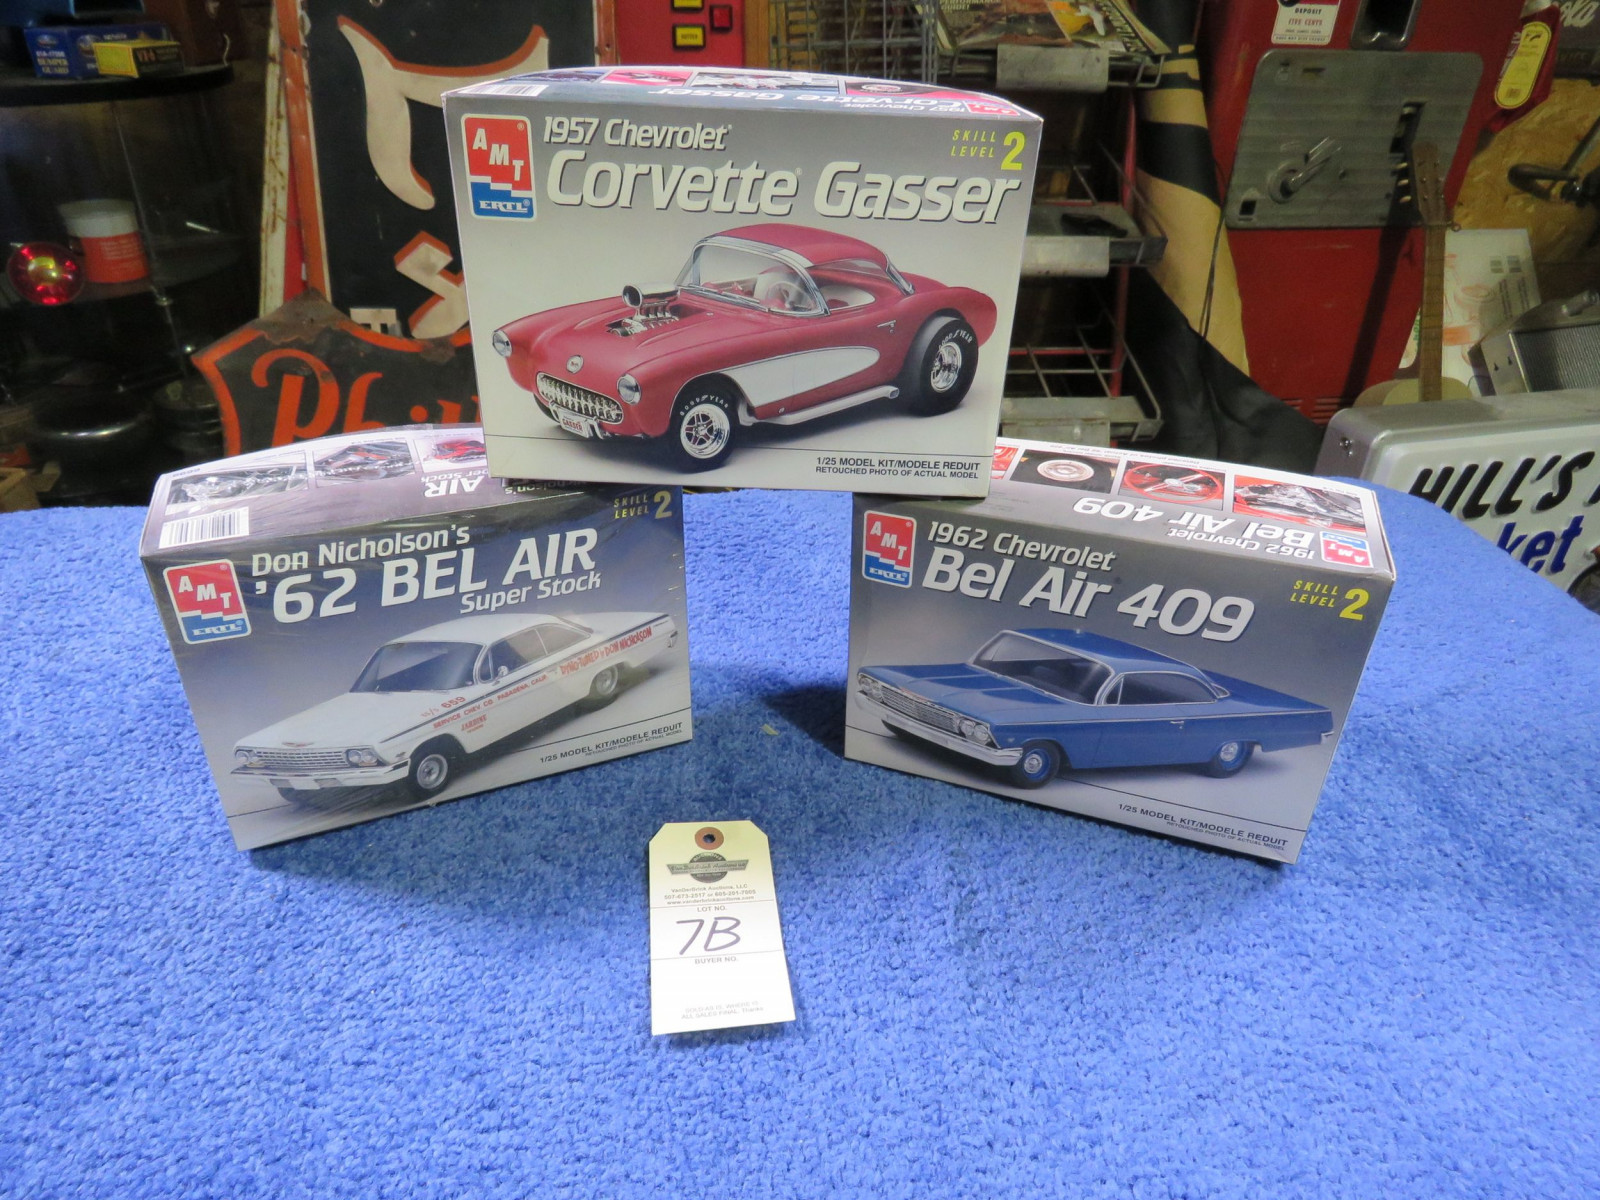 AMT Chevrolet 162 Belair and 1957 Chevrolet Corvette Models - Image 1